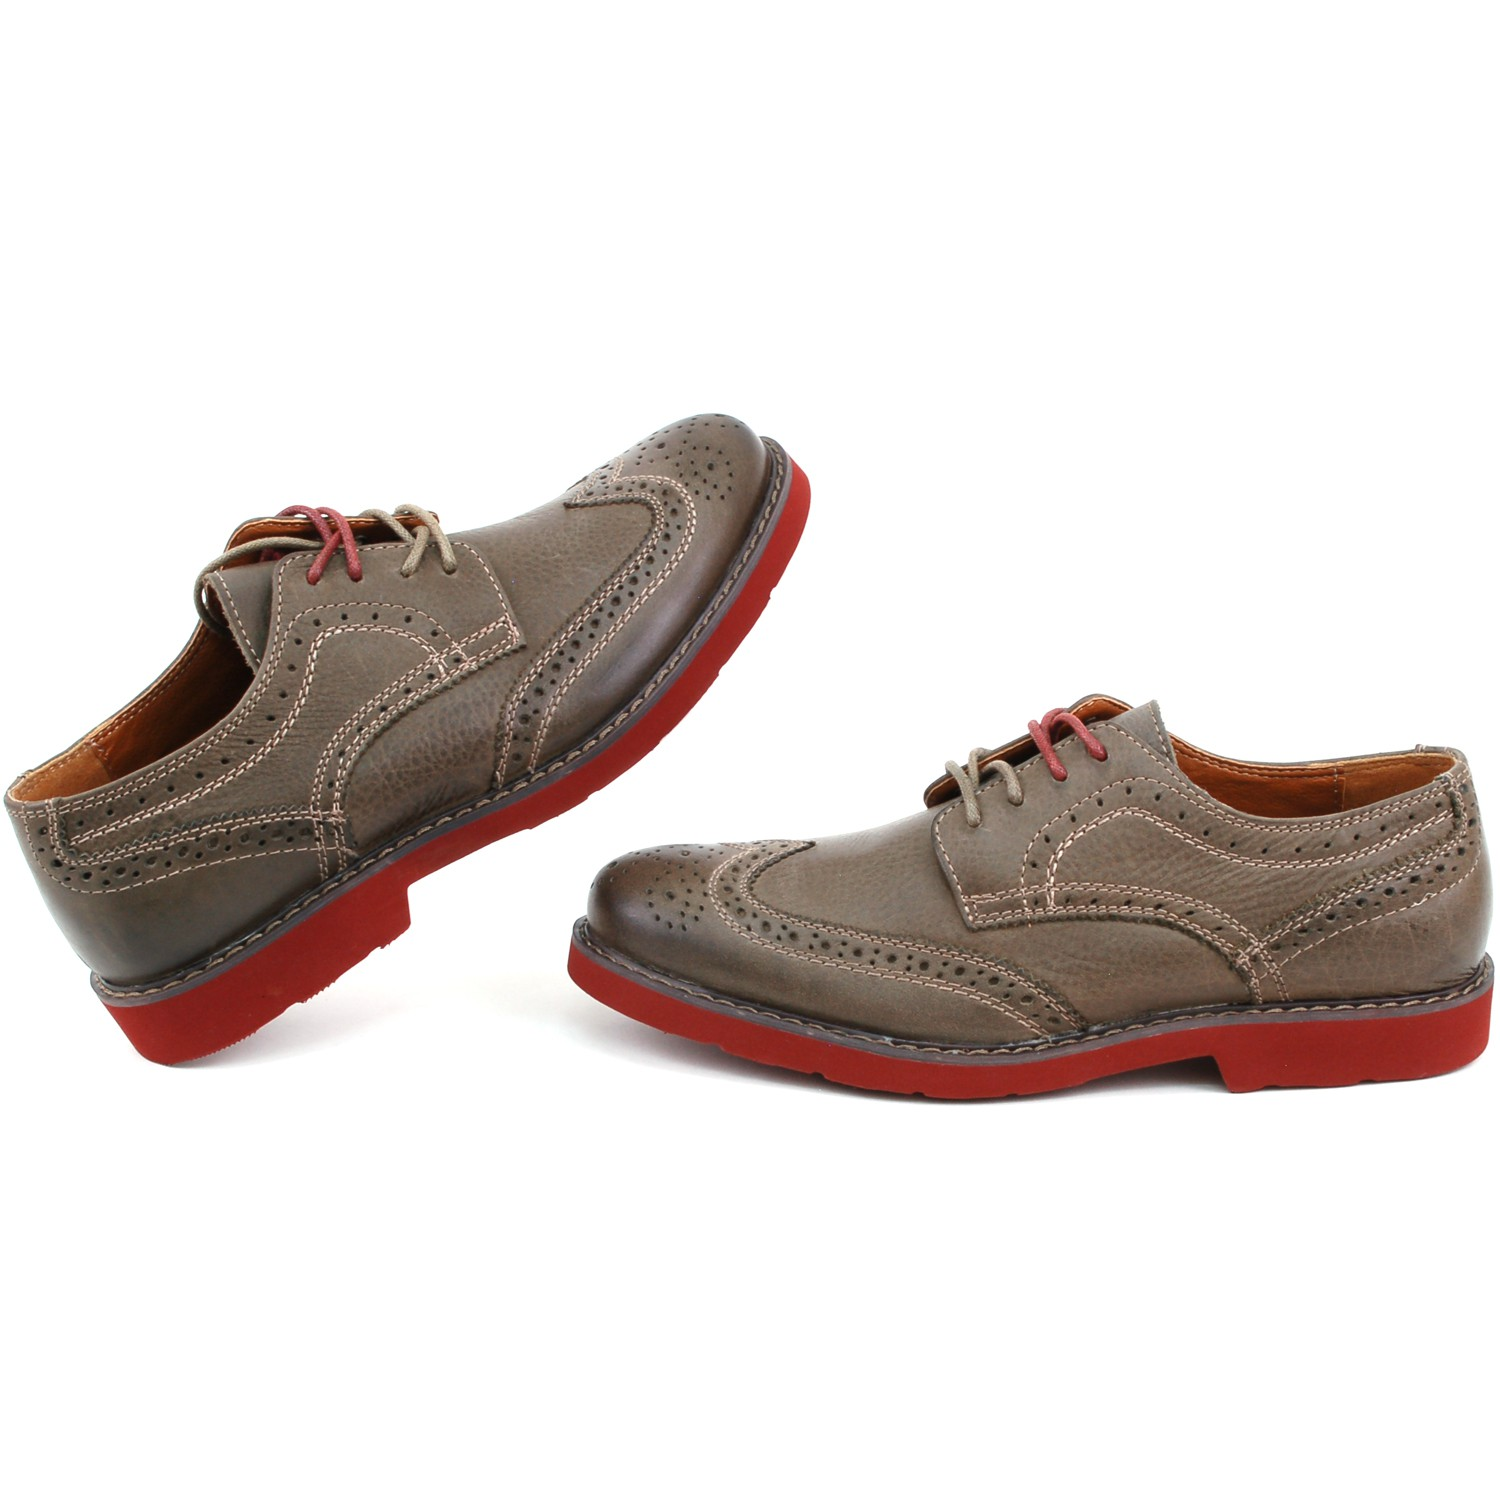 mens wingtip oxfords real leather casual dress